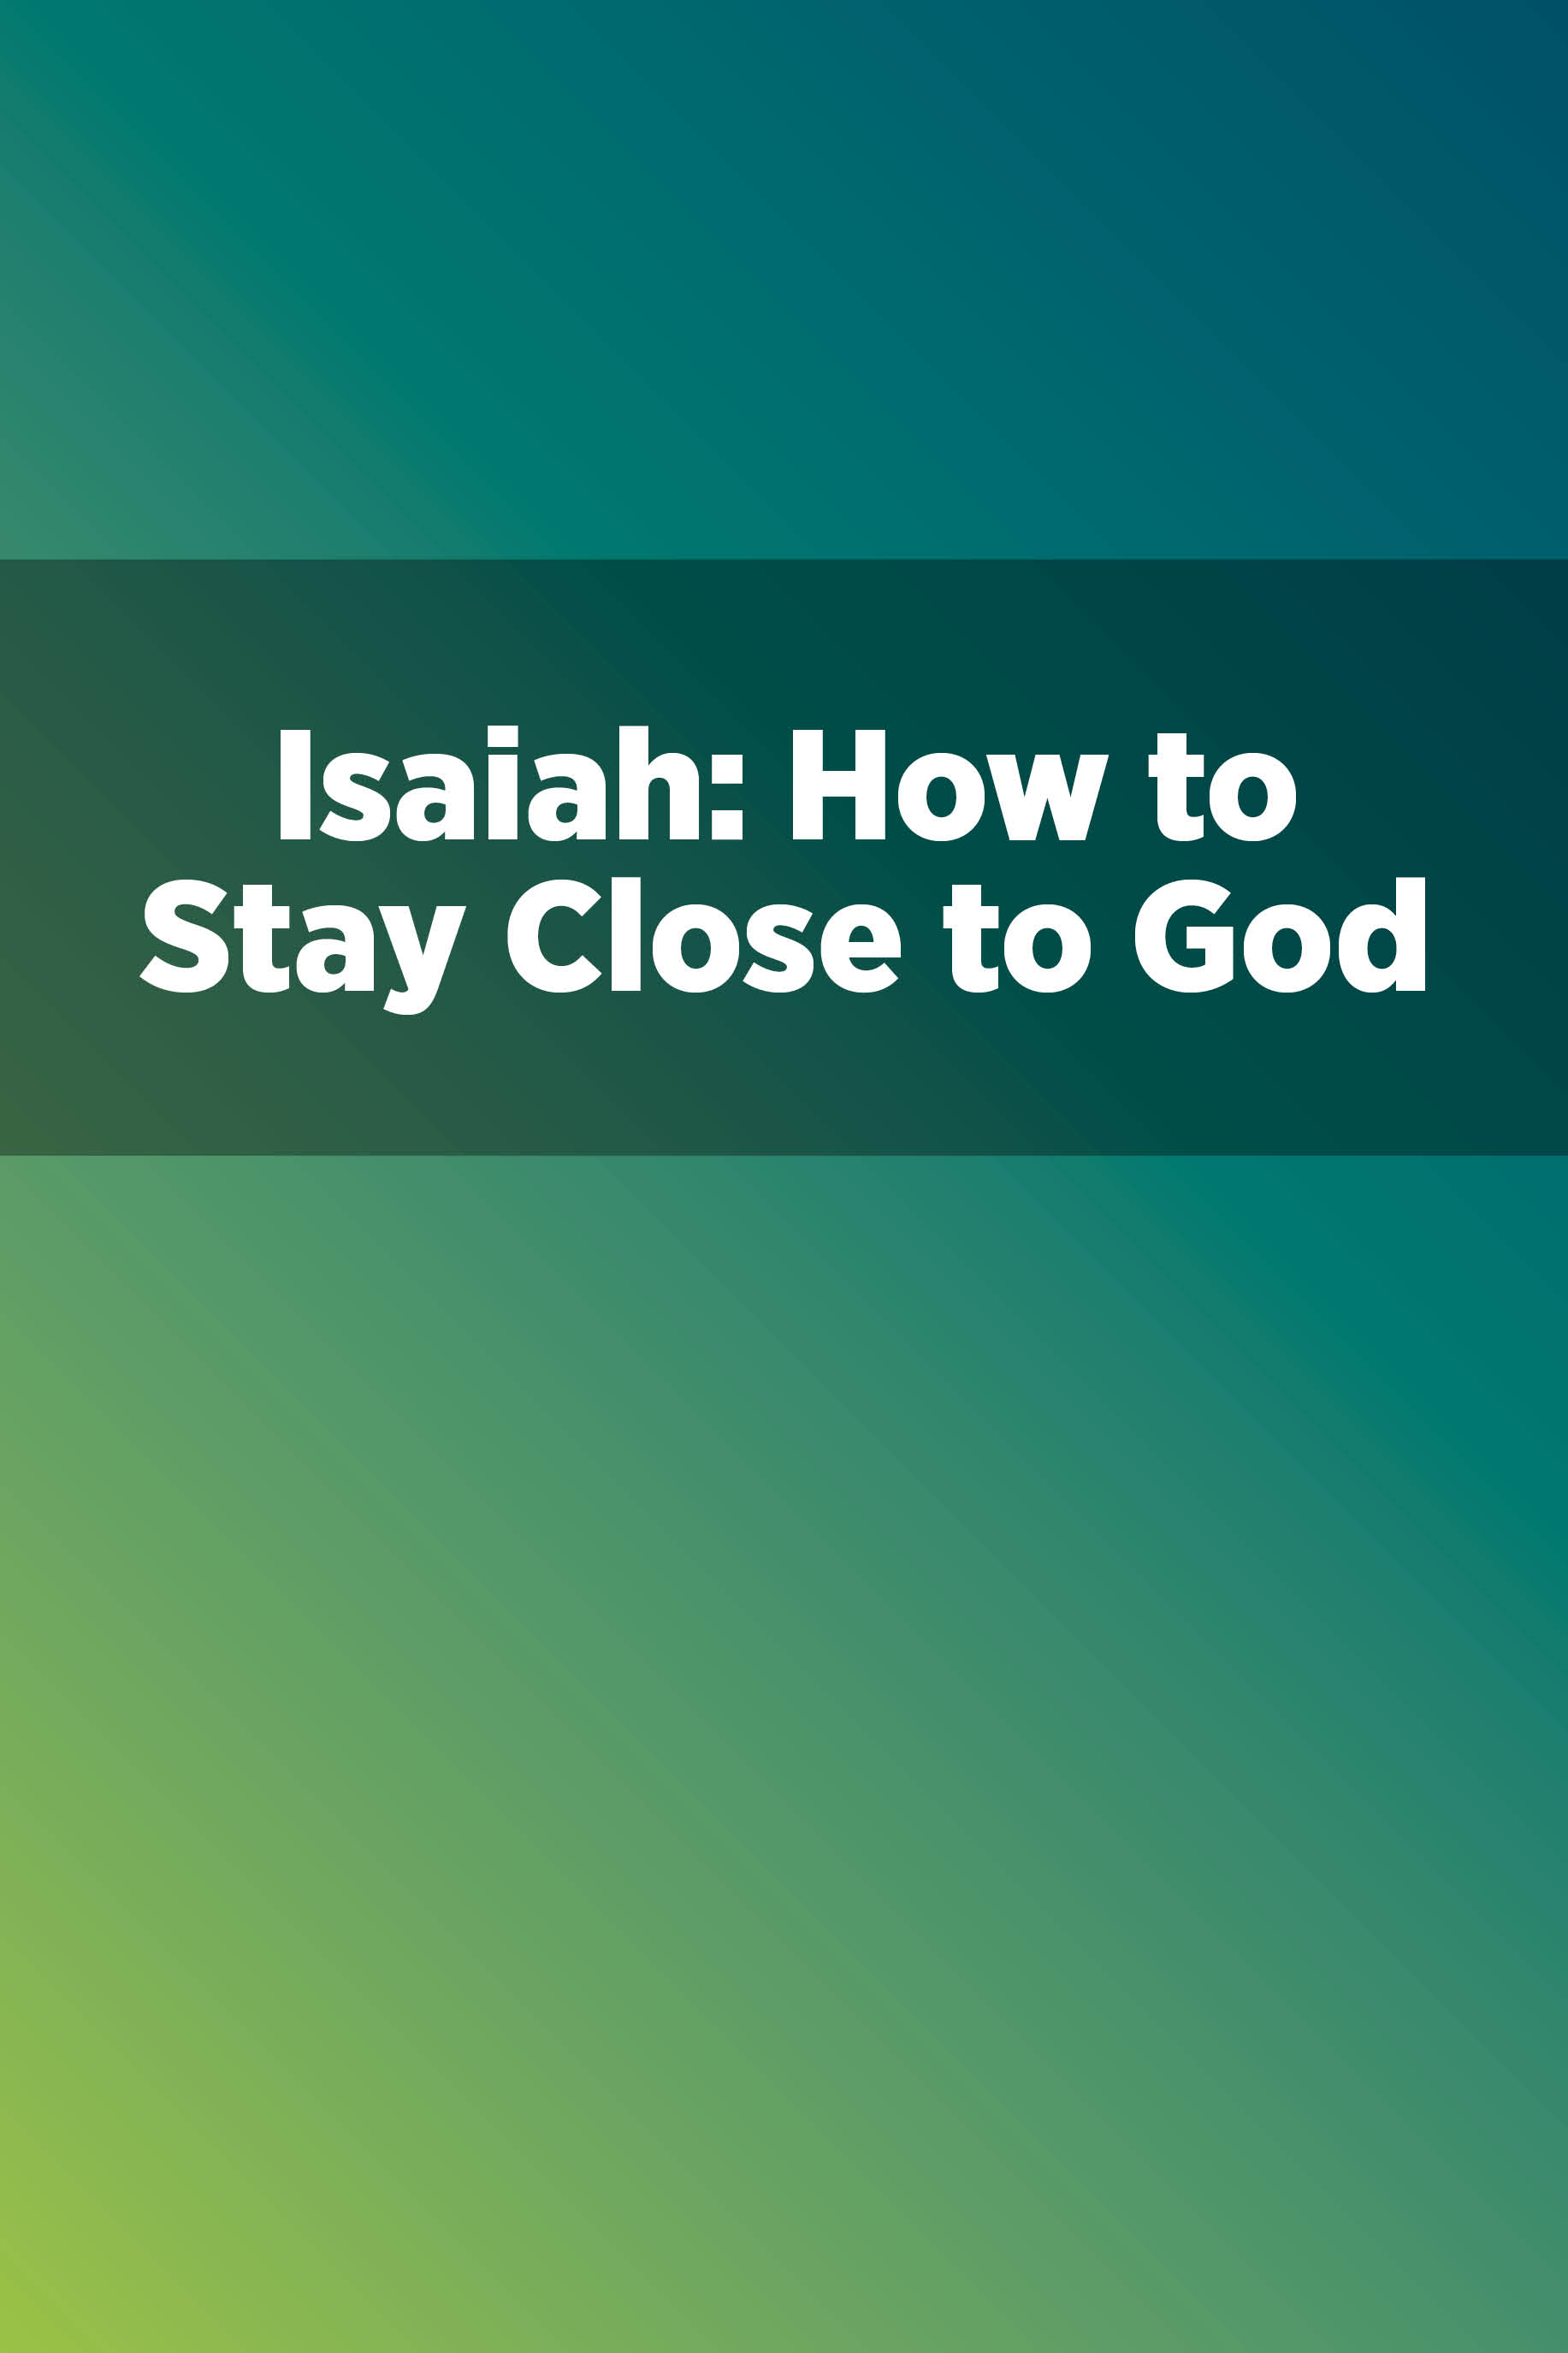 Isaiah: How to Stay Close to God